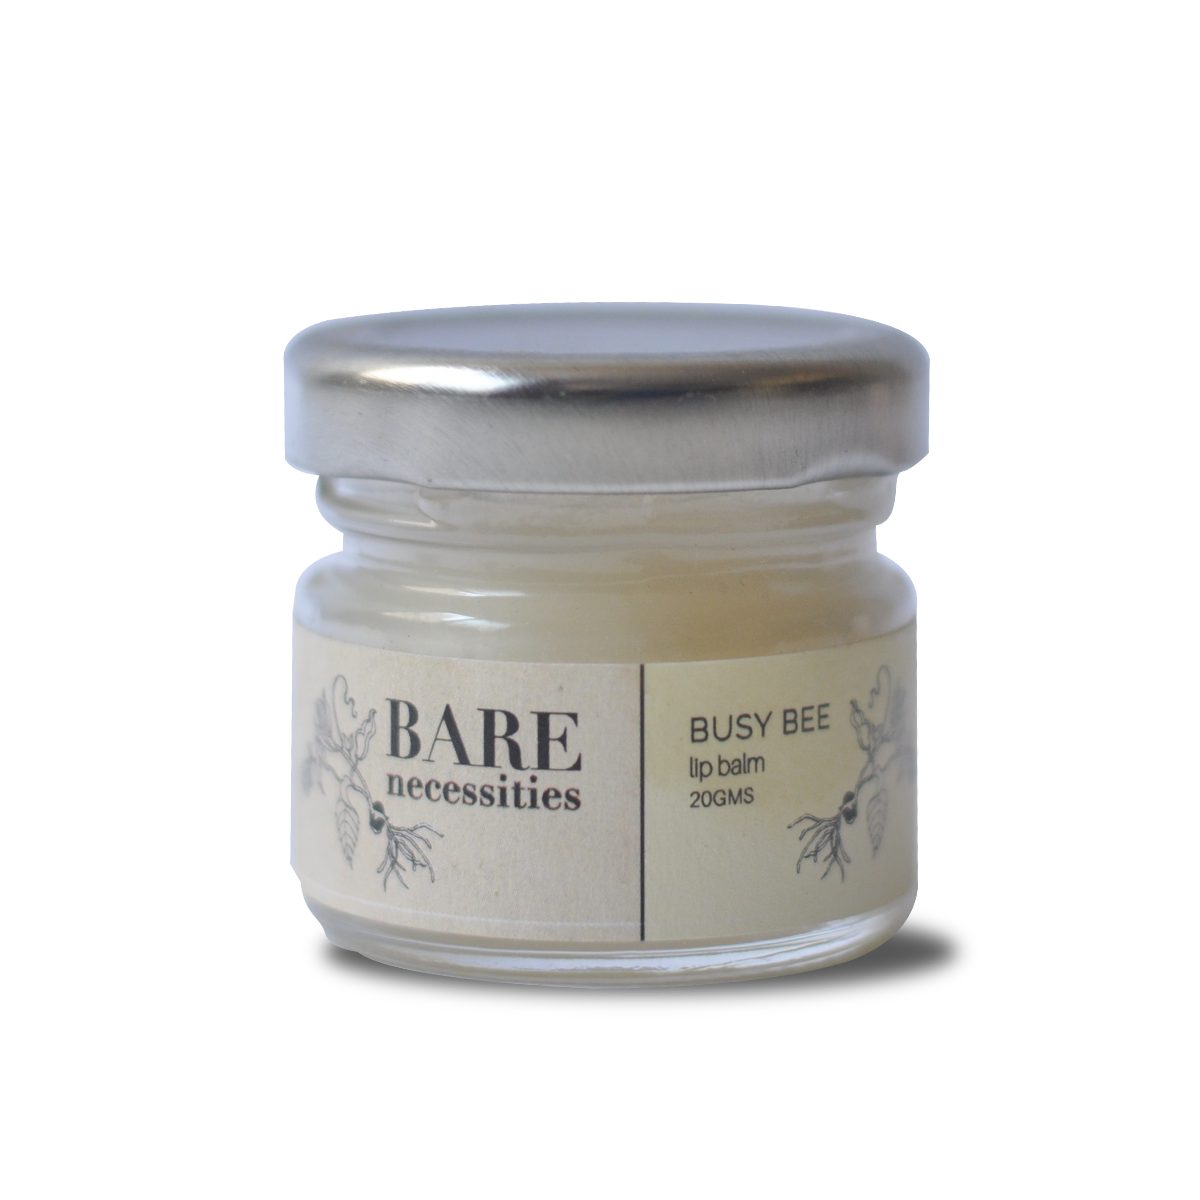 Bare Necessities Busy Bee Lip Balm 20g